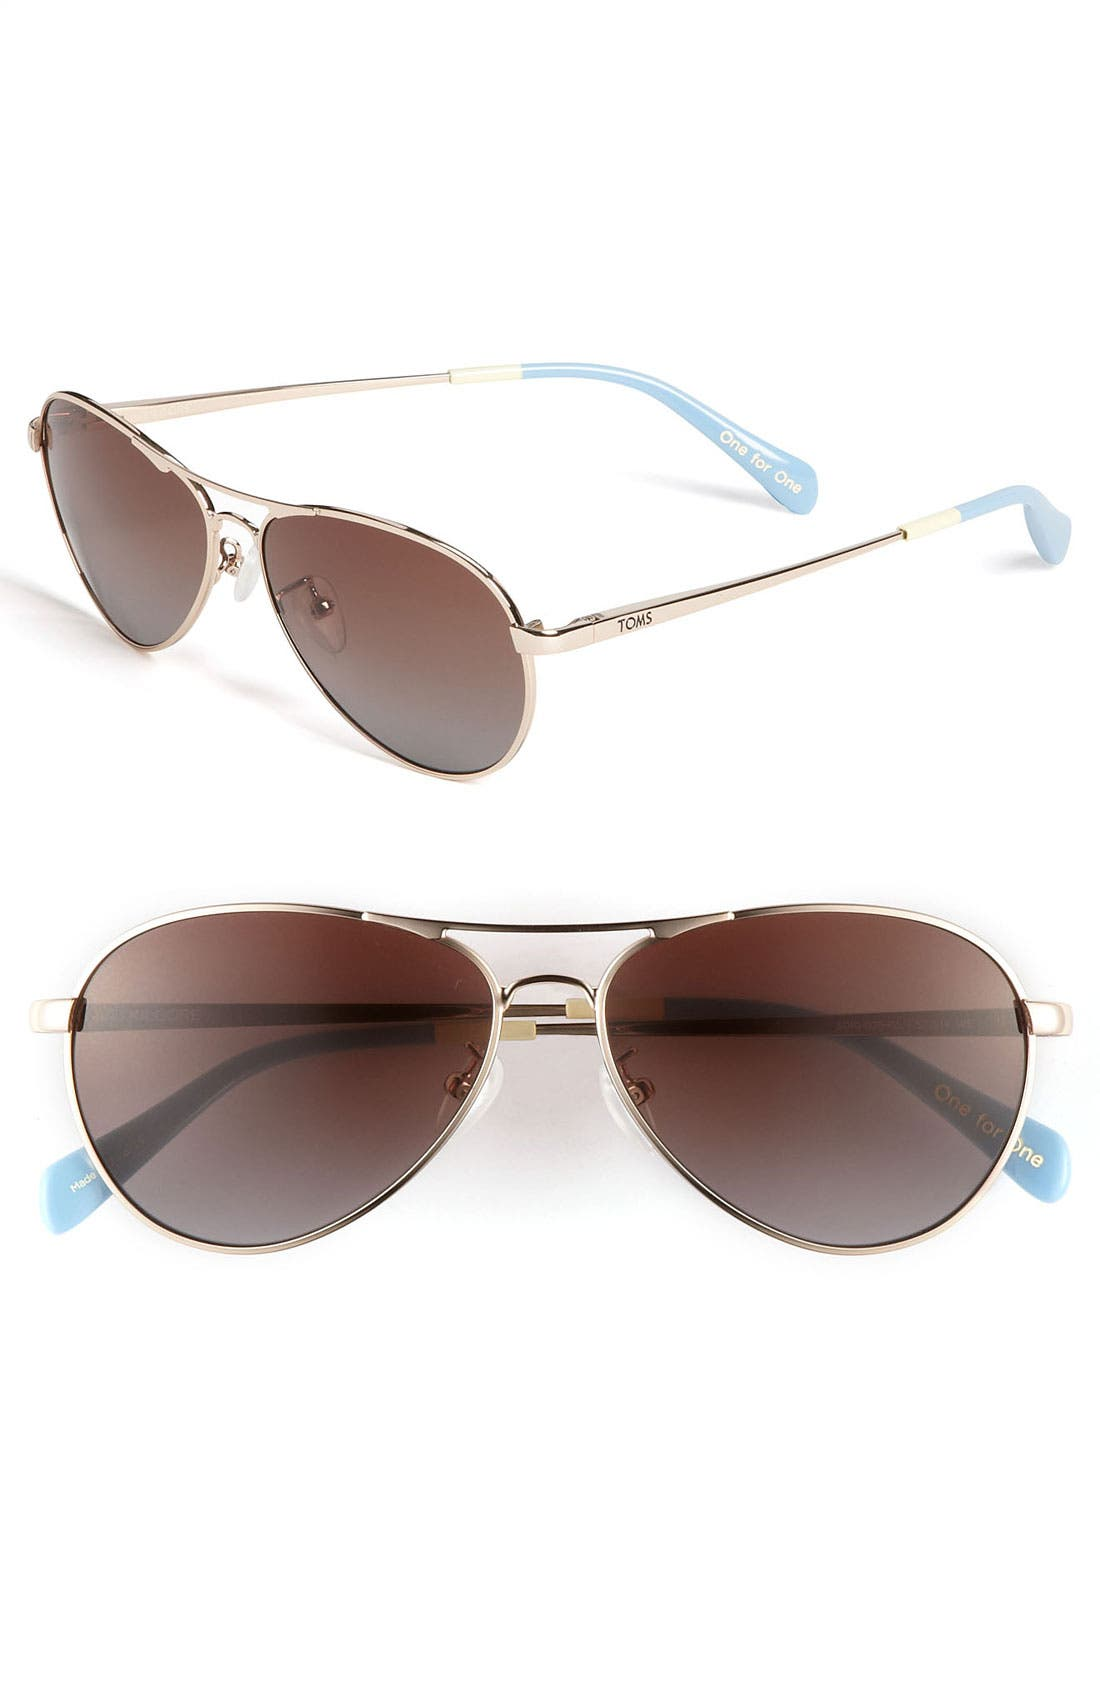 Alternate Image 1 Selected - TOMS 'Kilgore' 57mm Polarized Aviator Sunglasses